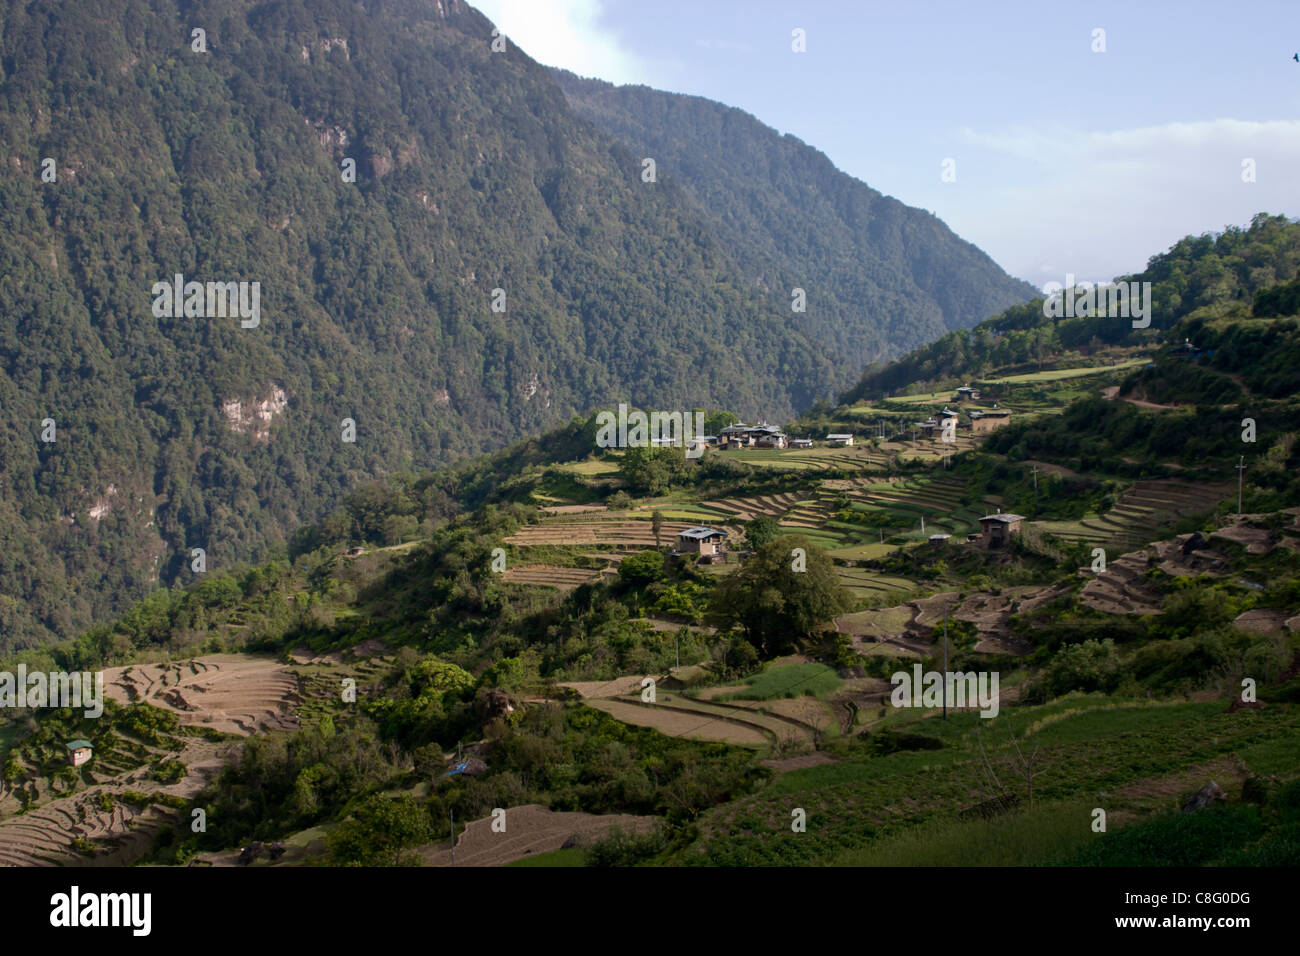 Terraced farmland below Gasa village with steep mountain and valley - Stock Image